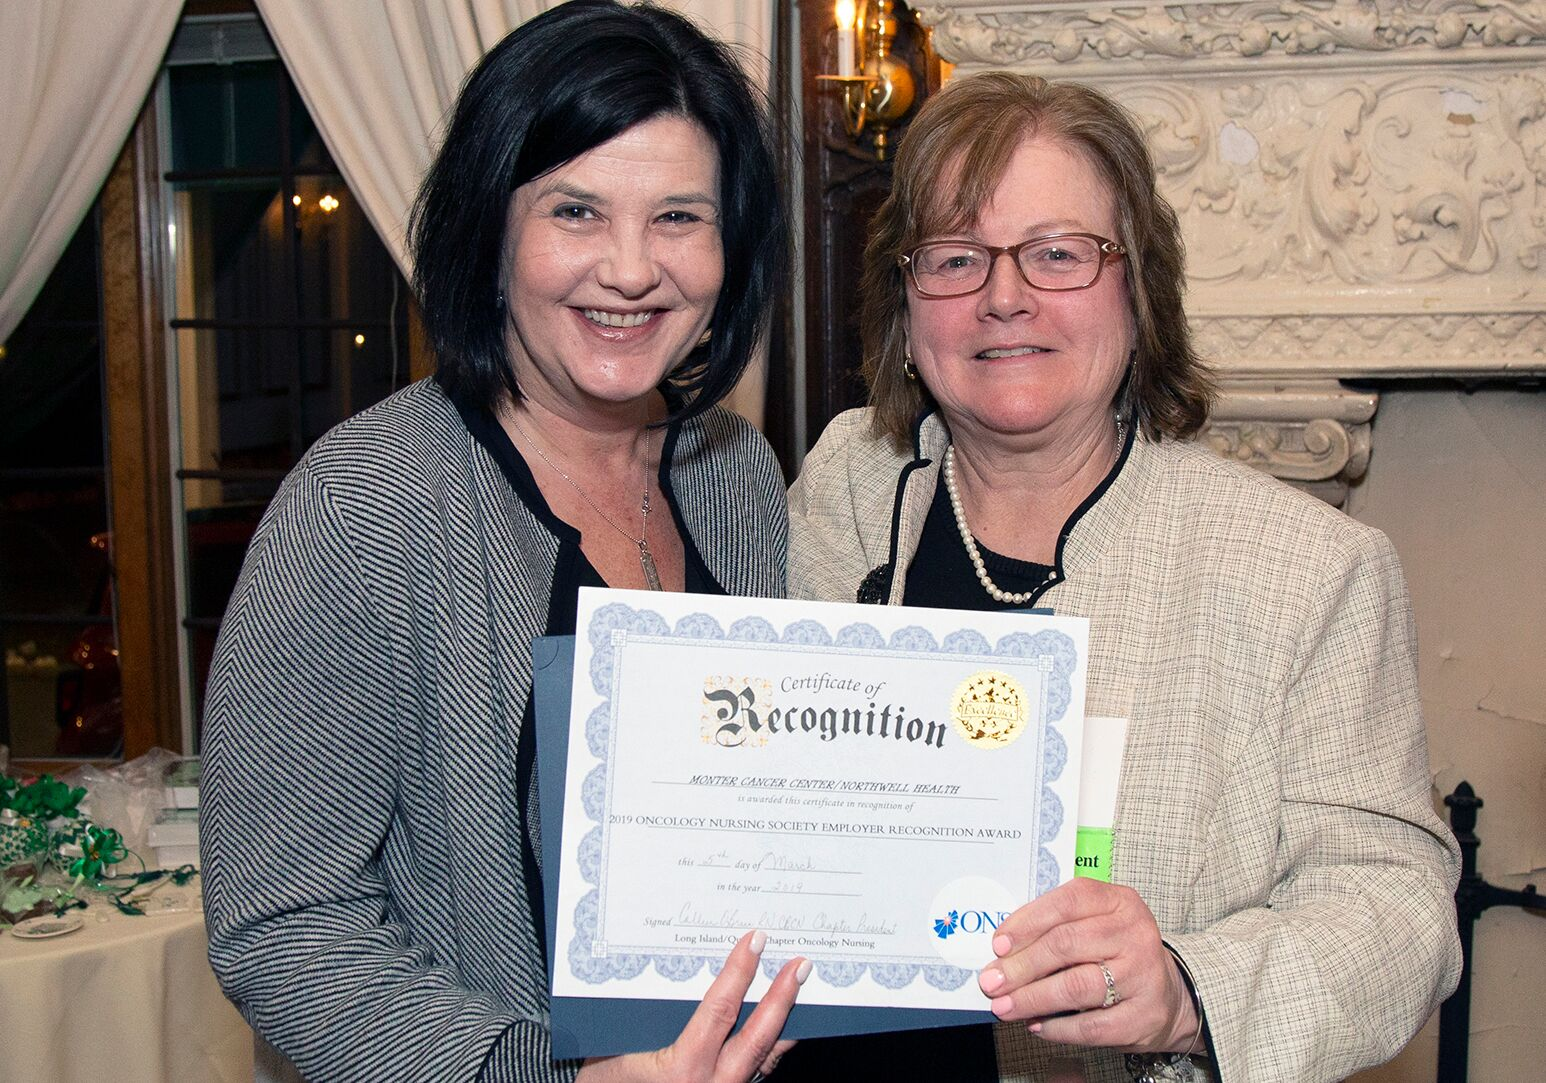 Oncology Nurses Society recognition award